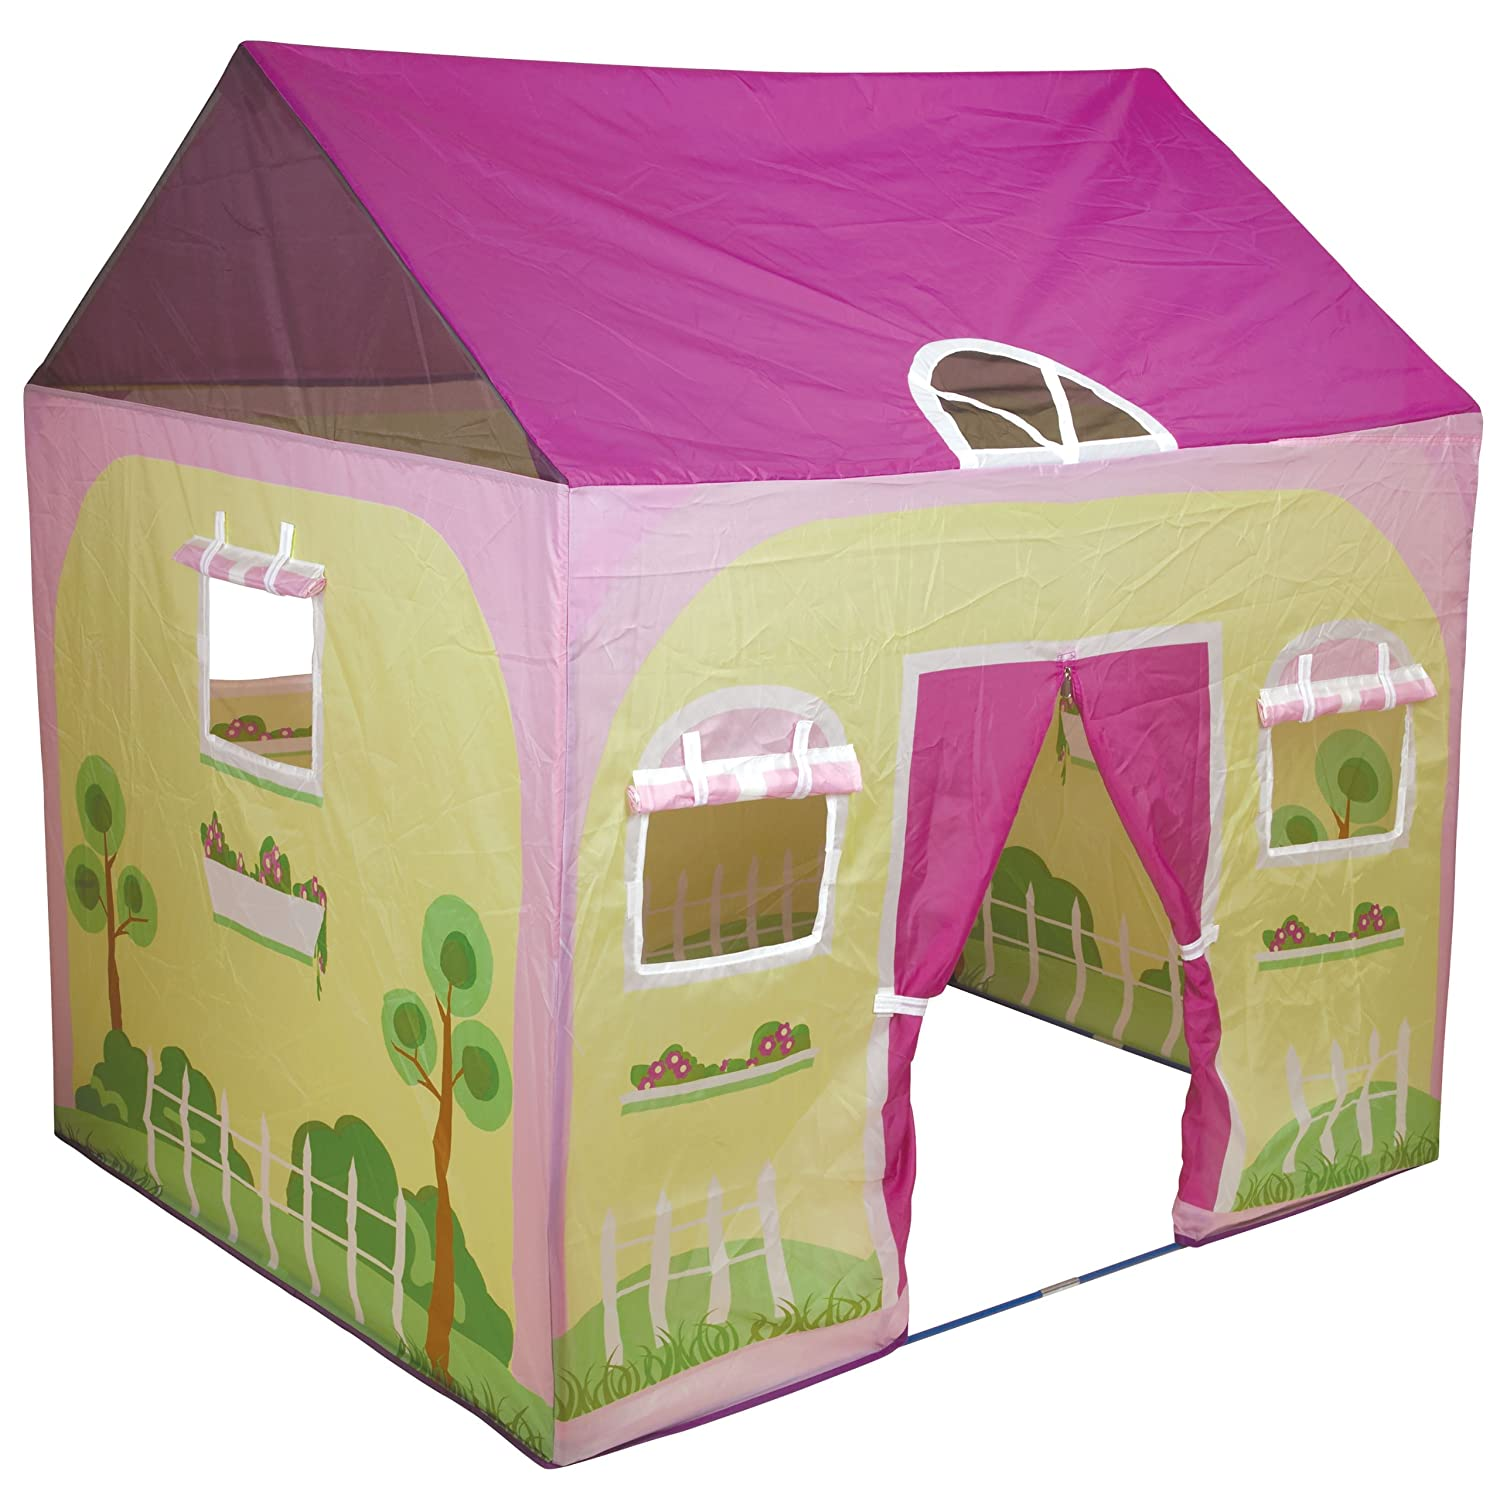 Cottage House Kids Play Tent  sc 1 st  kids Indoor Tents & Cottage House Kids Play Tent - kids Indoor Tents